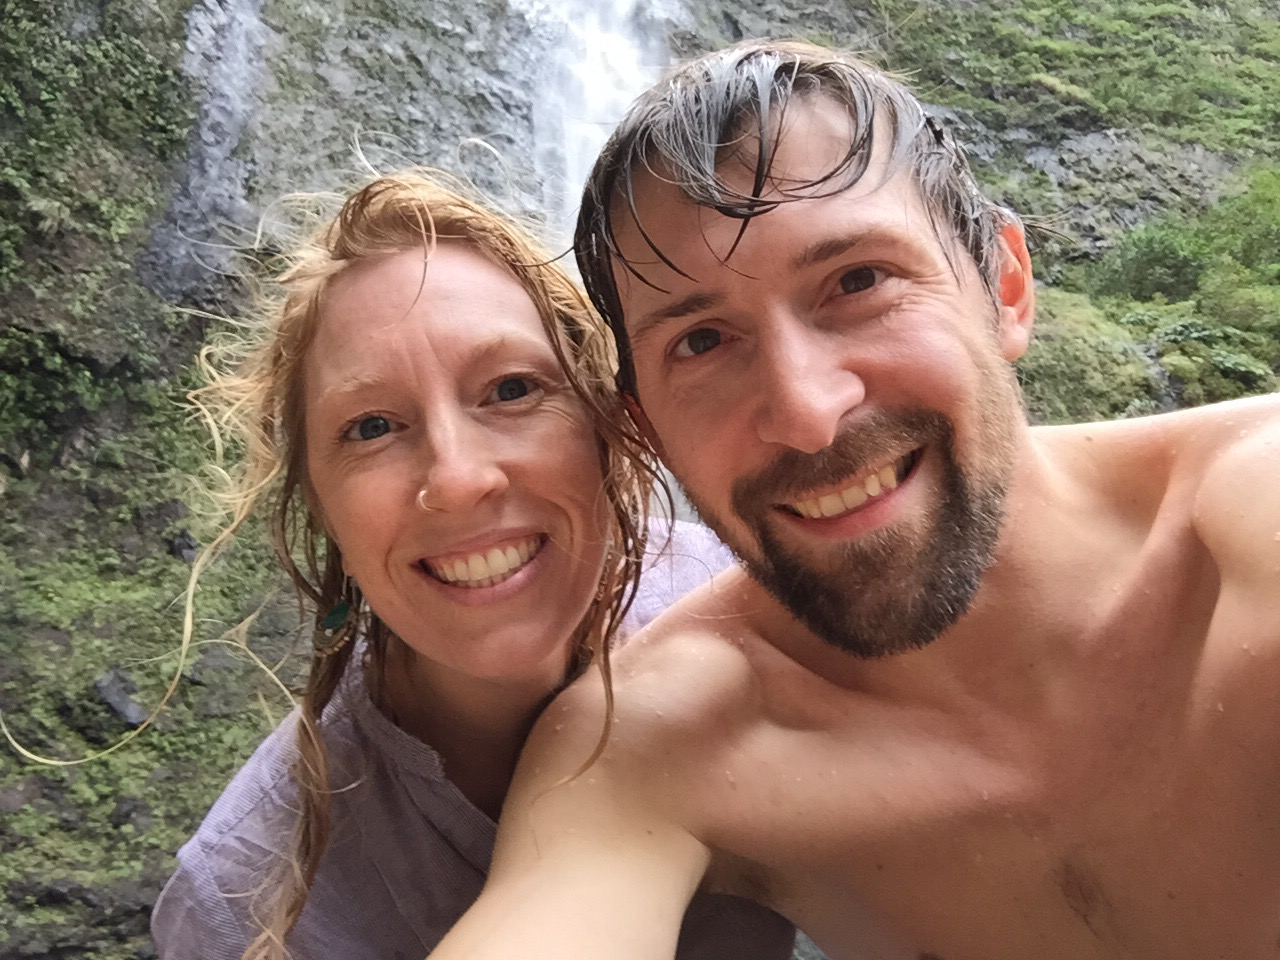 Andrea and Jeff in a selfie with the falls and green covered walls behind them.